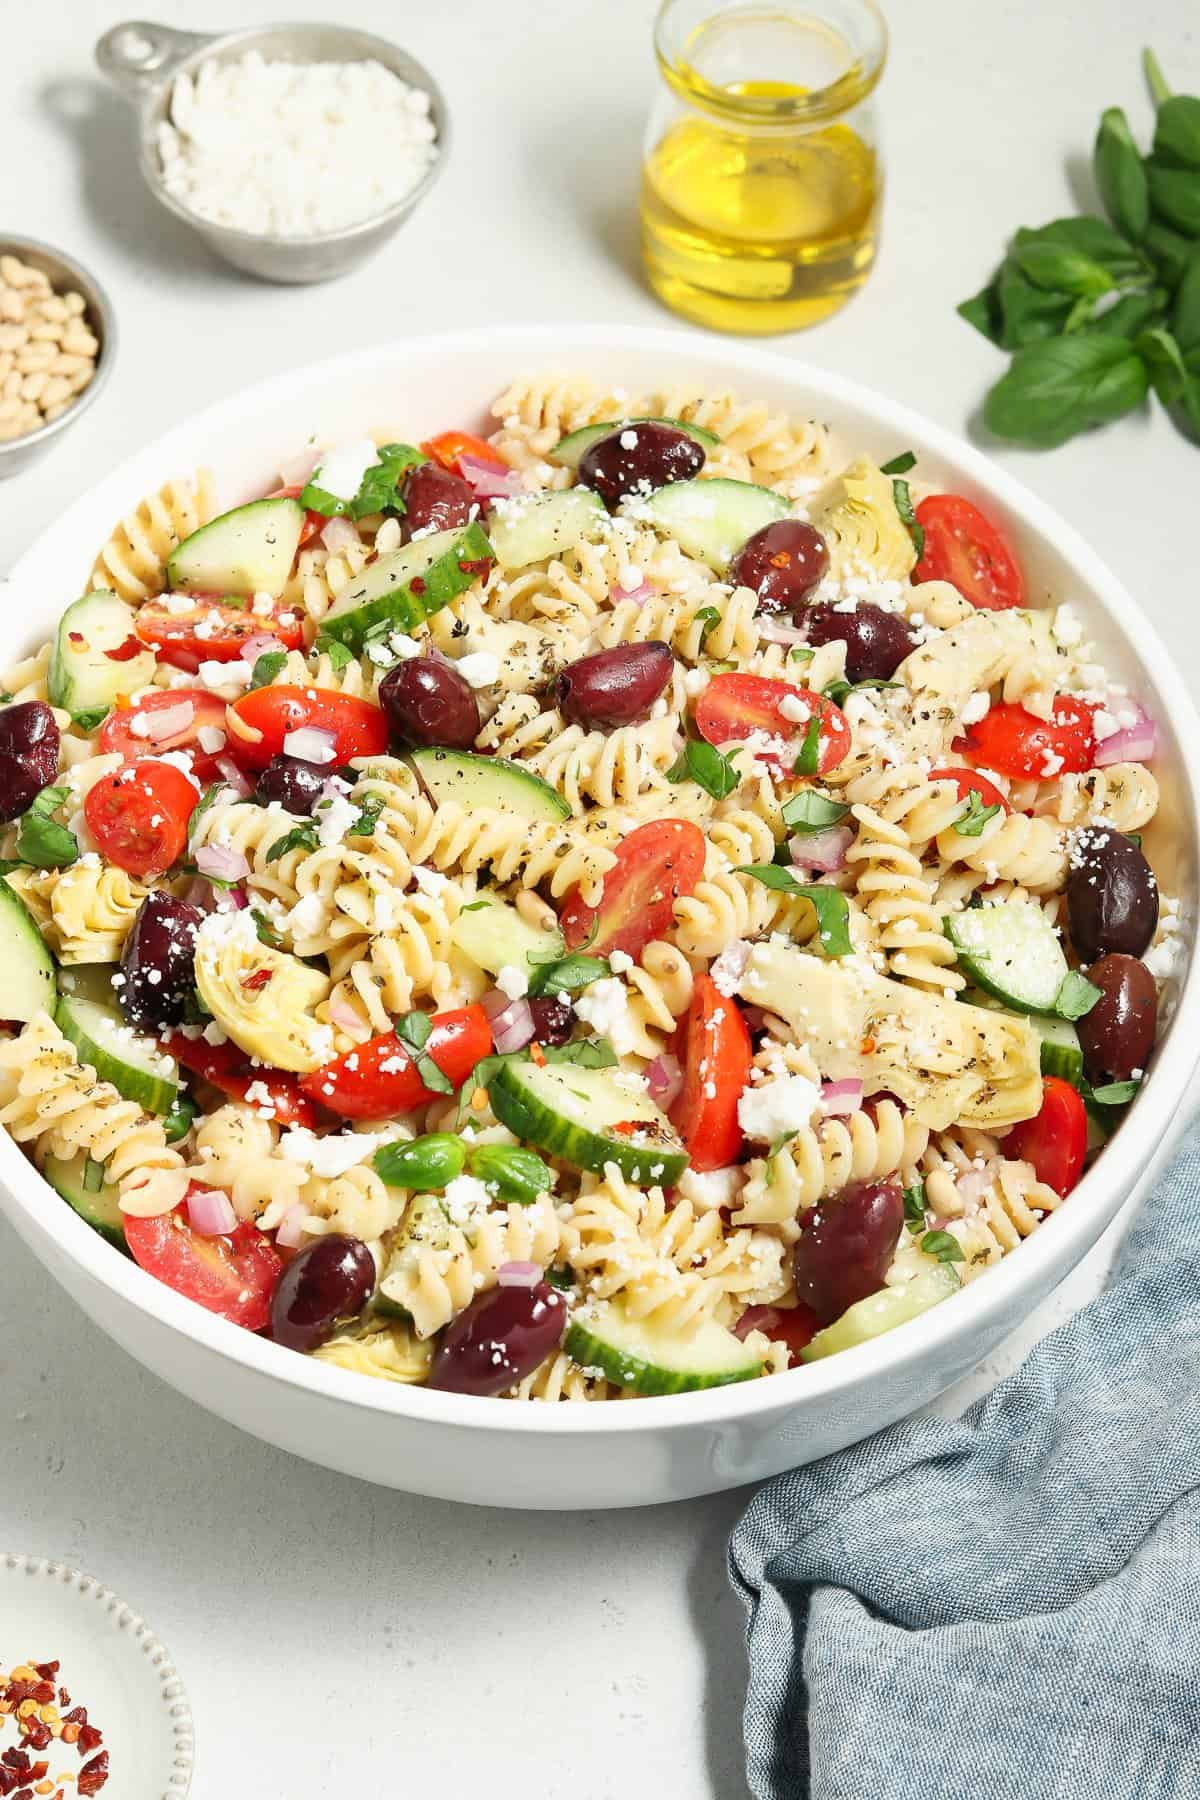 Tossed Mediterranean Pasta Salad in a large bowl. Olive oil, basil and pine nuts on the side.